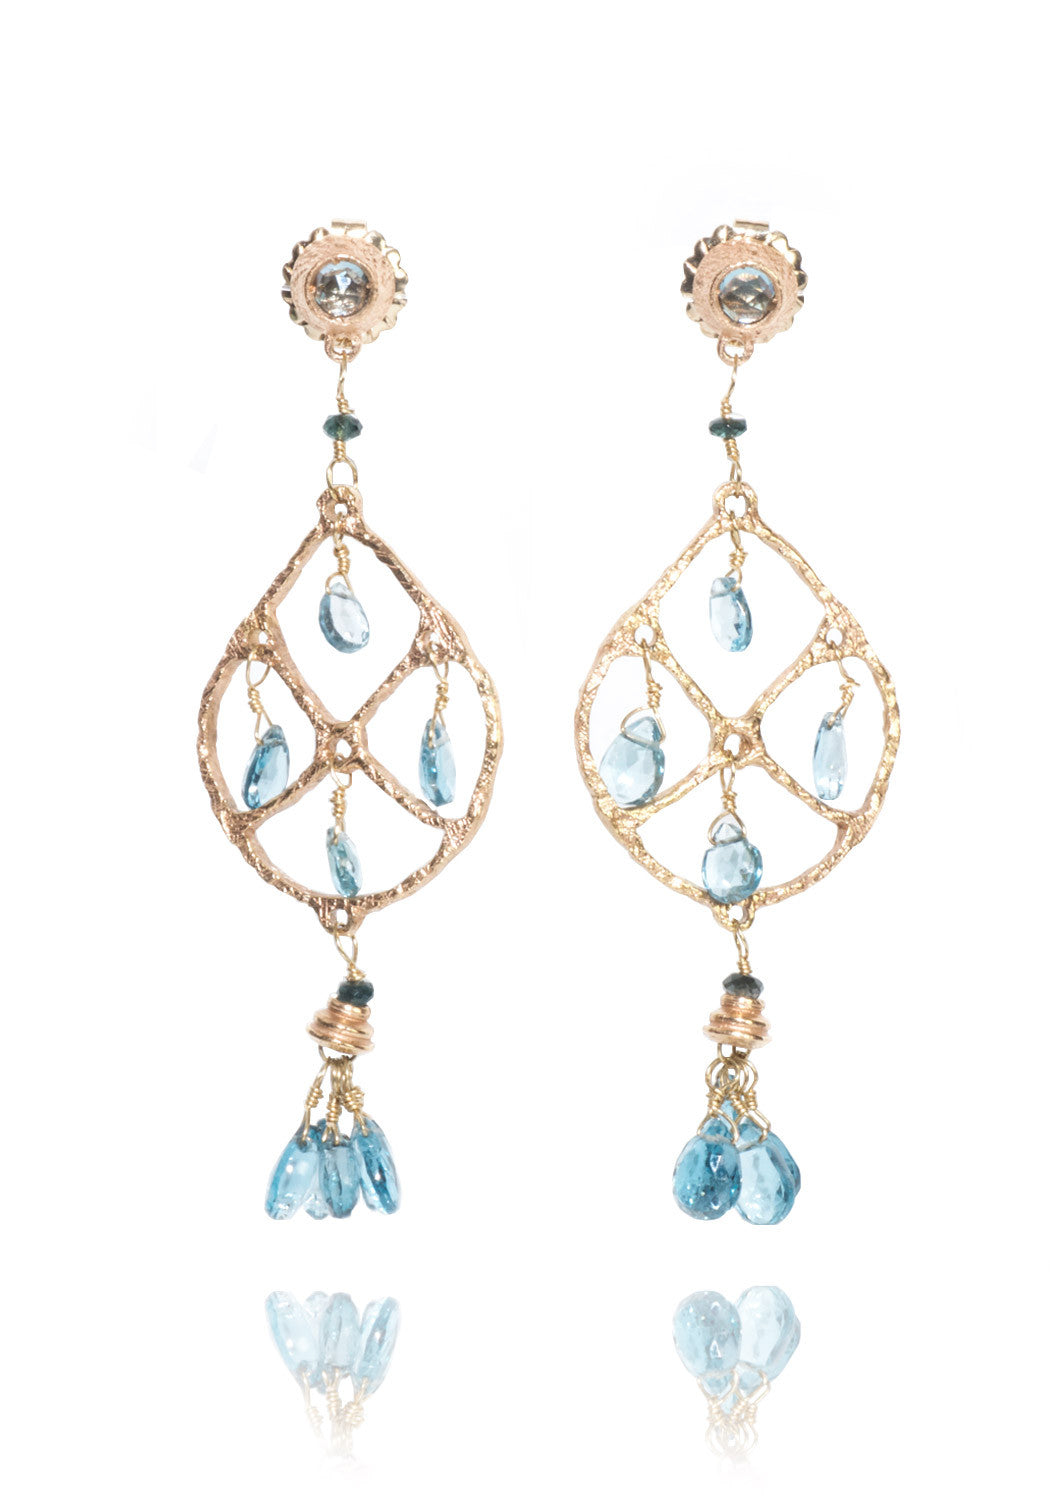 Dominique Cohen London Blue Topaz Dreamcatcher Earrings